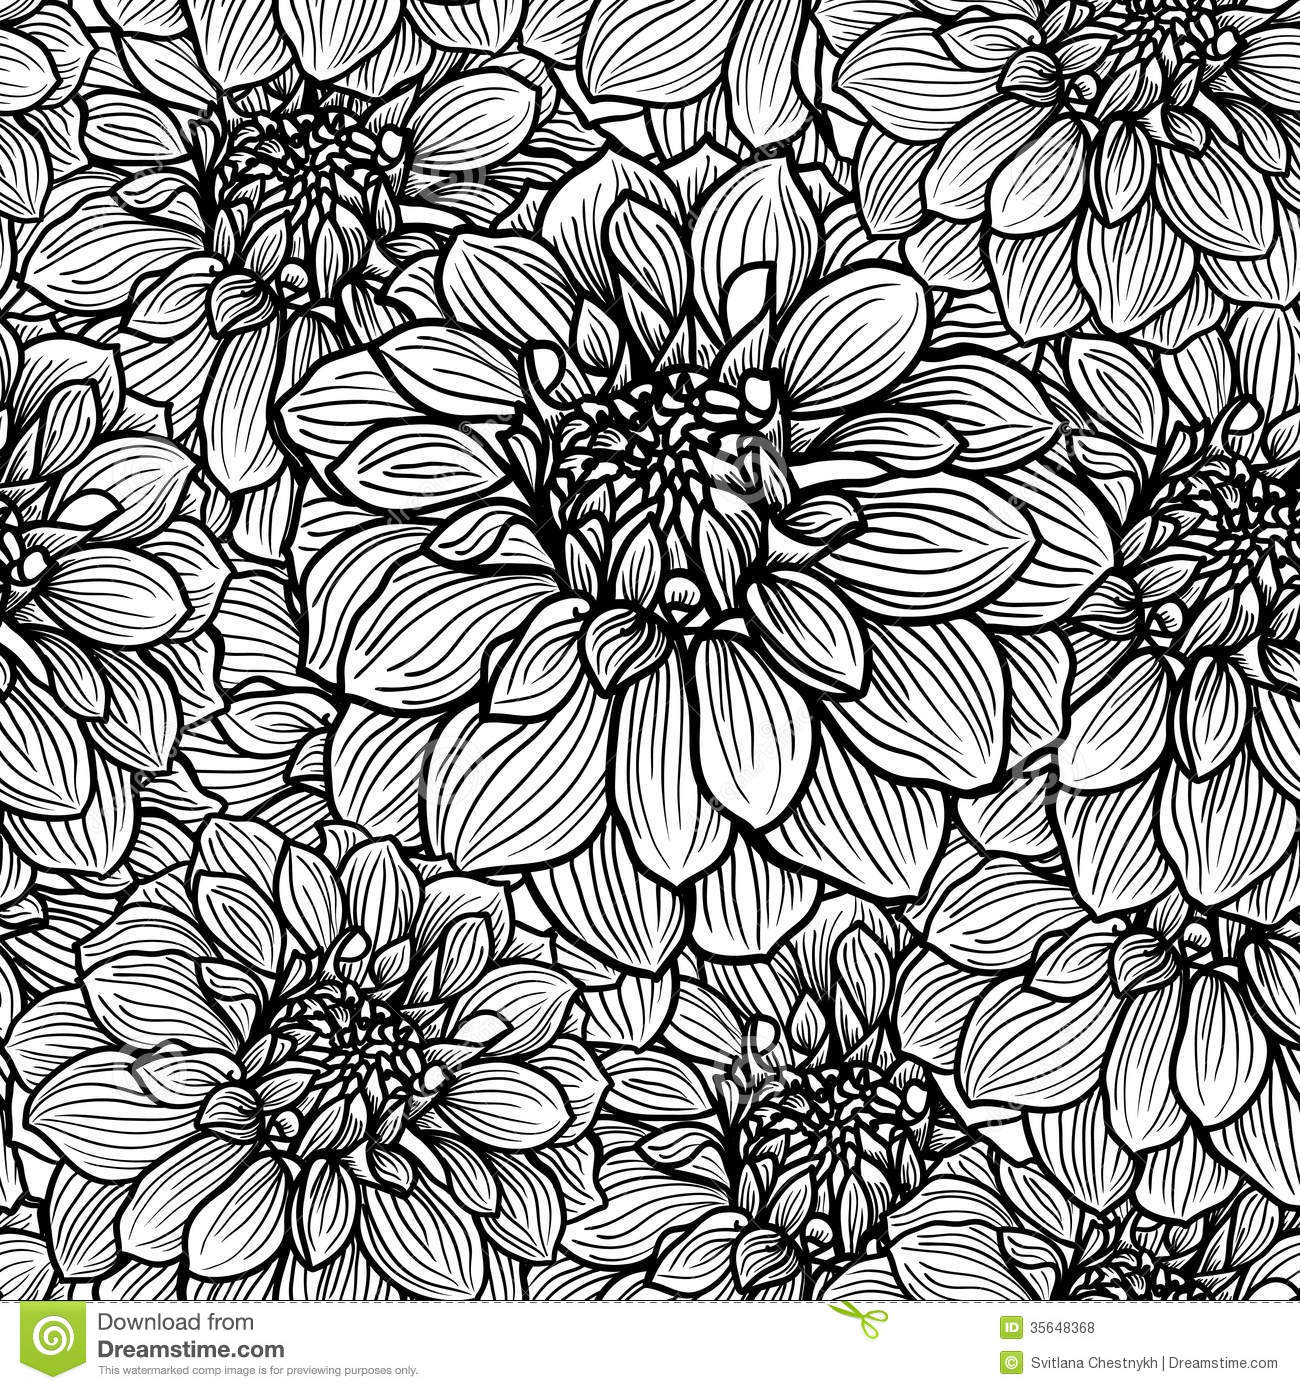 Black Flower On White Background Royalty Free Stock: Hand Drawn Dahlia Flower Stock Vector. Image Of Beautiful